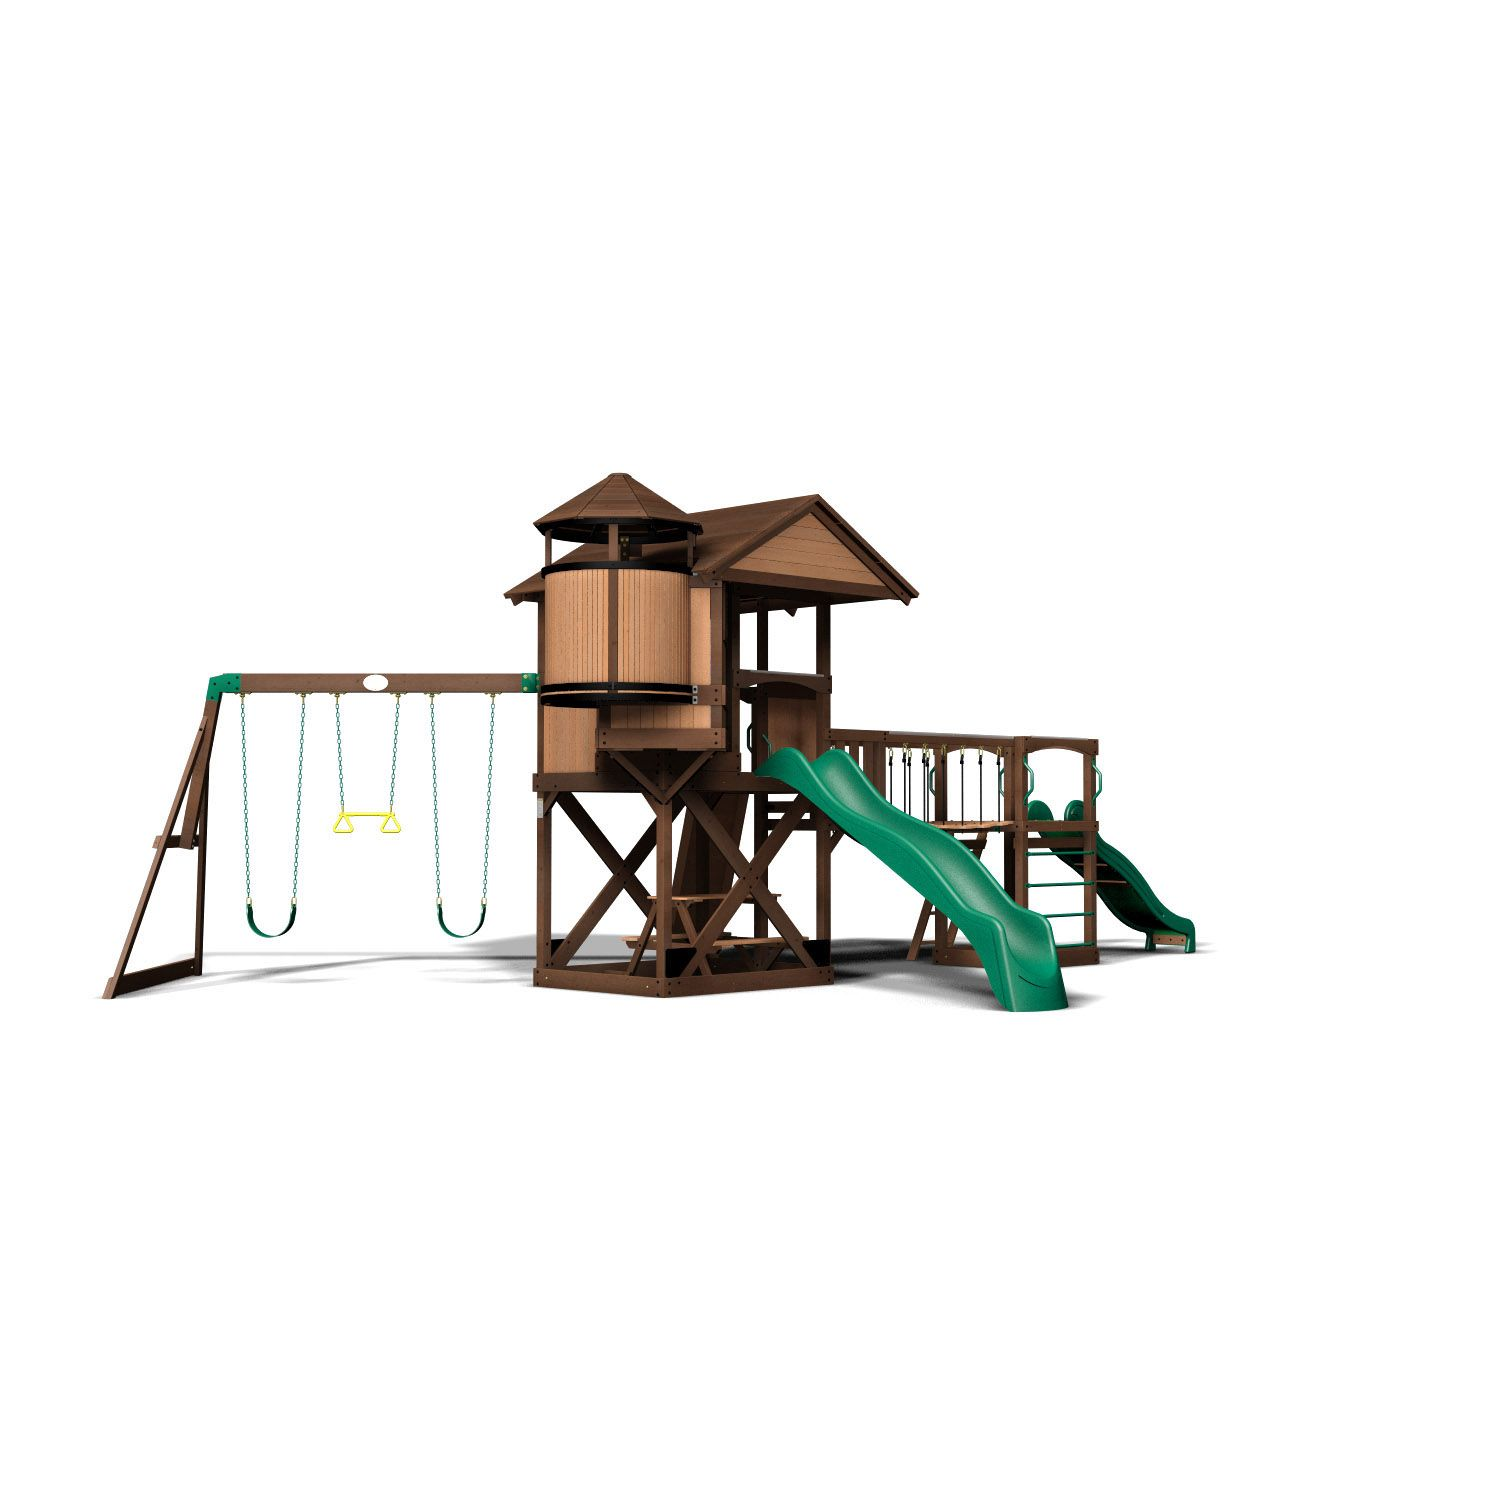 play global inflowcomponent p lifetime set freestanding ebay s adventure stuff swing inflow big technicalissues content res